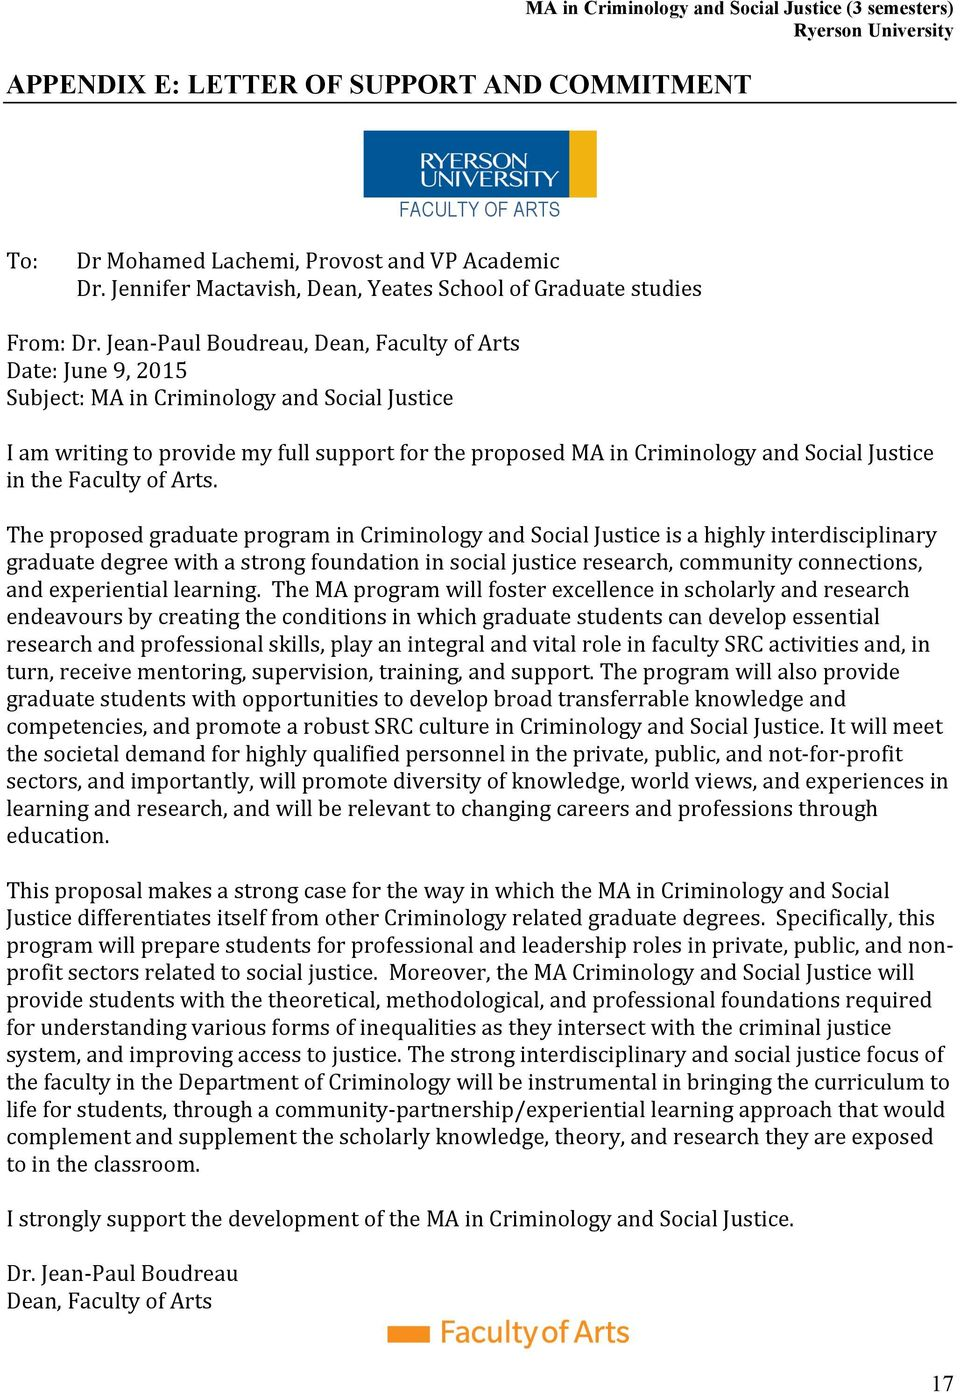 Jean- Paul Boudreau, Dean, Faculty of Arts Date: June 9, 2015 Subject: MA in Criminology and Social Justice I am writing to provide my full support for the proposed MA in Criminology and Social